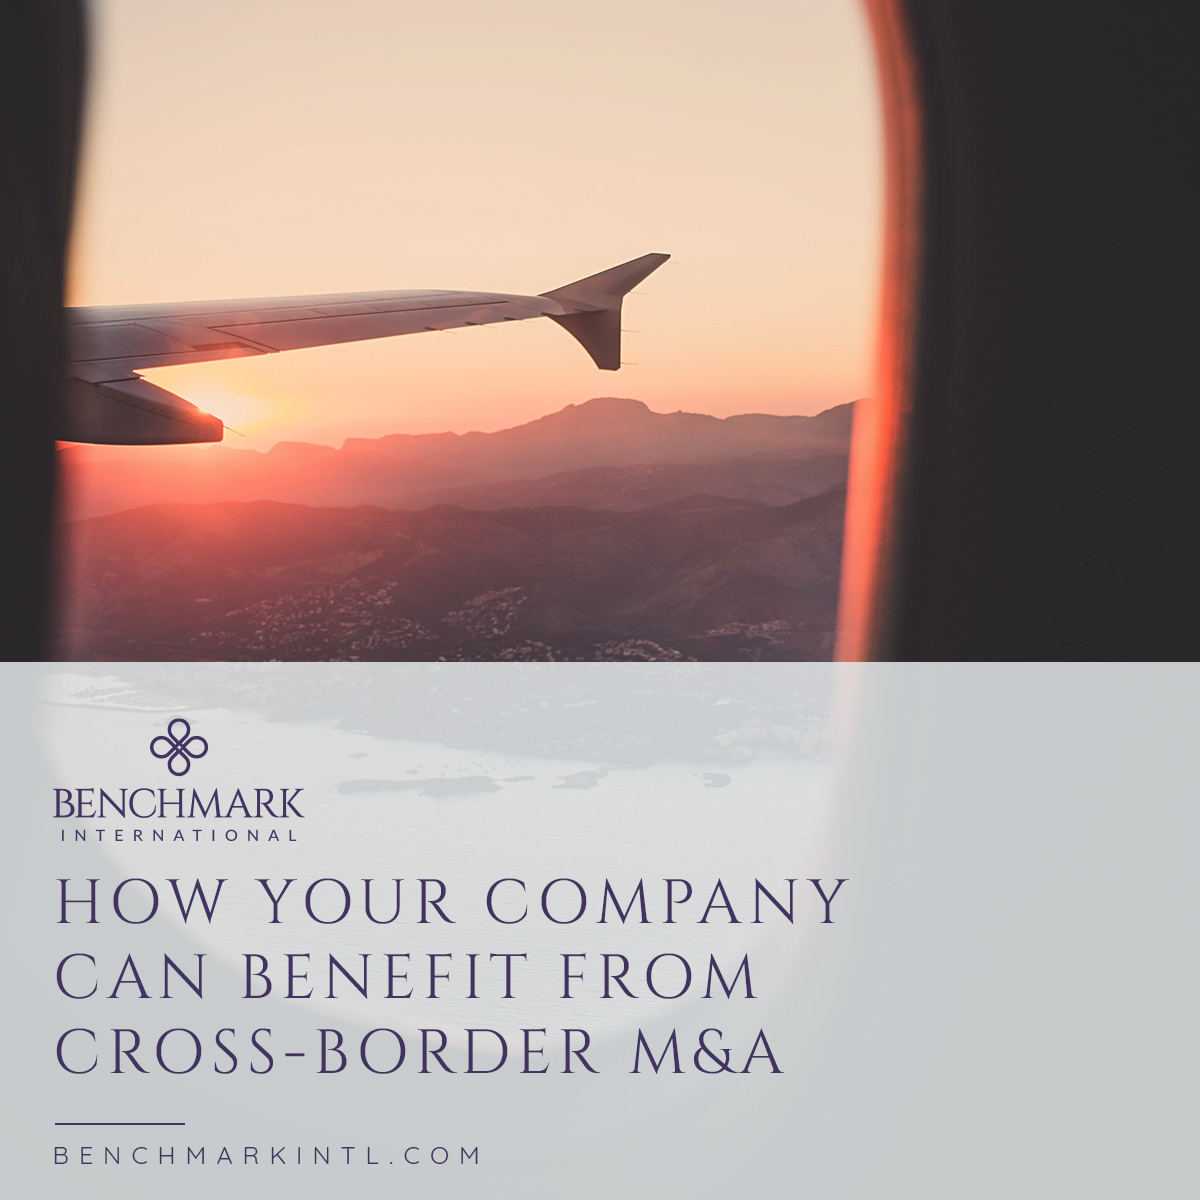 How_Your_Company_Can_Benefit_From_Cross_Border_M&A_Blog_Social(2)